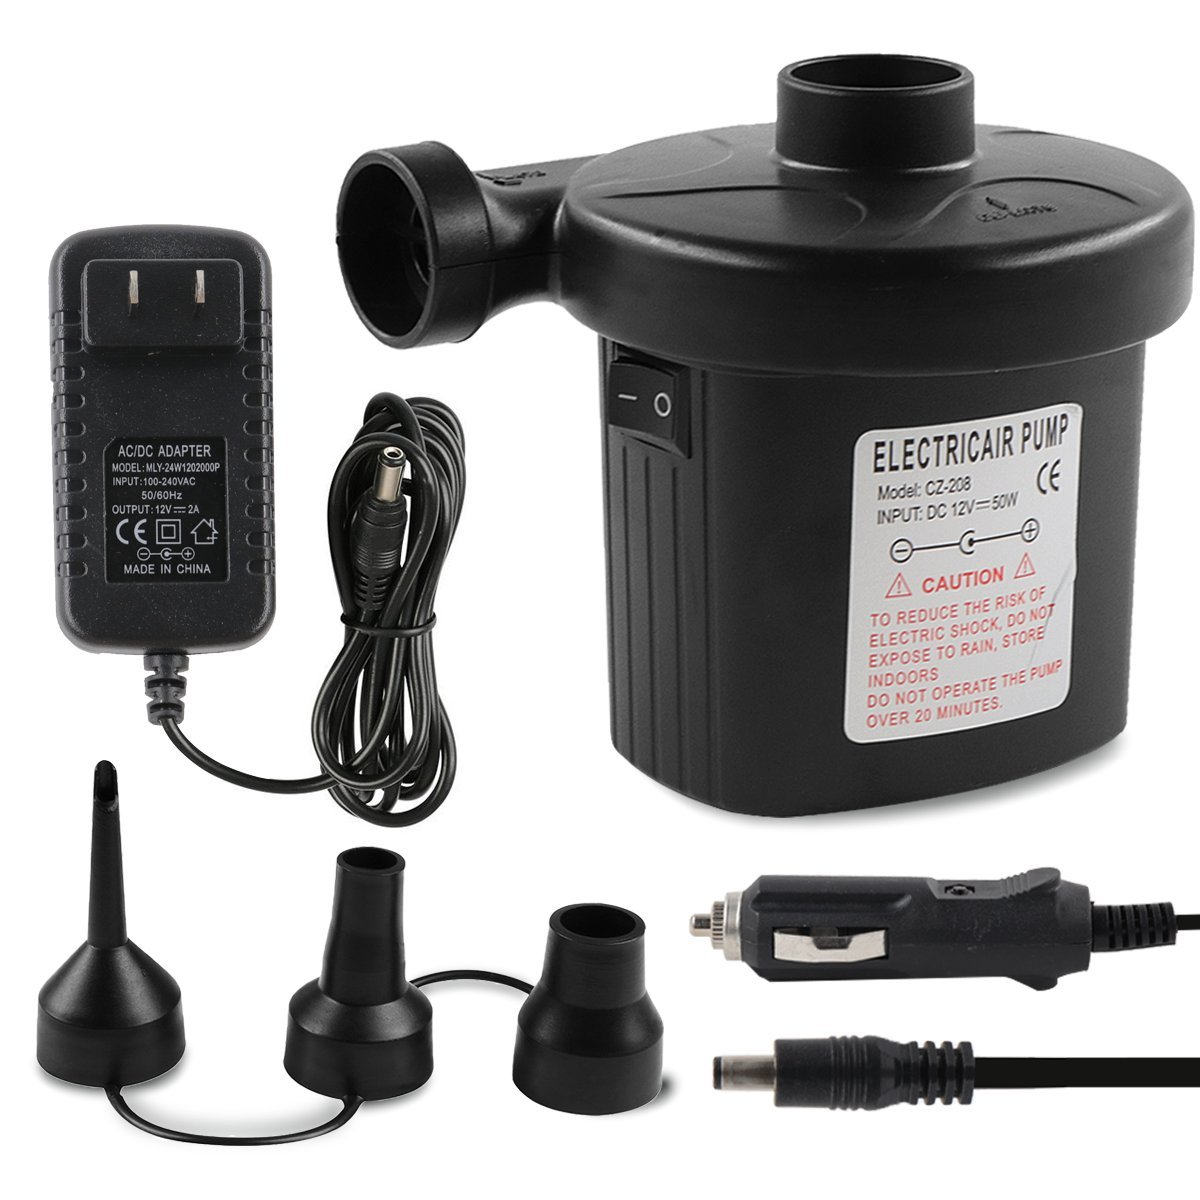 POKONBOY Electric Air Pump for Inflatables 110V AC/12V DC Quick-Fill Pump for Outdoor Inflatables Pool Toys Black